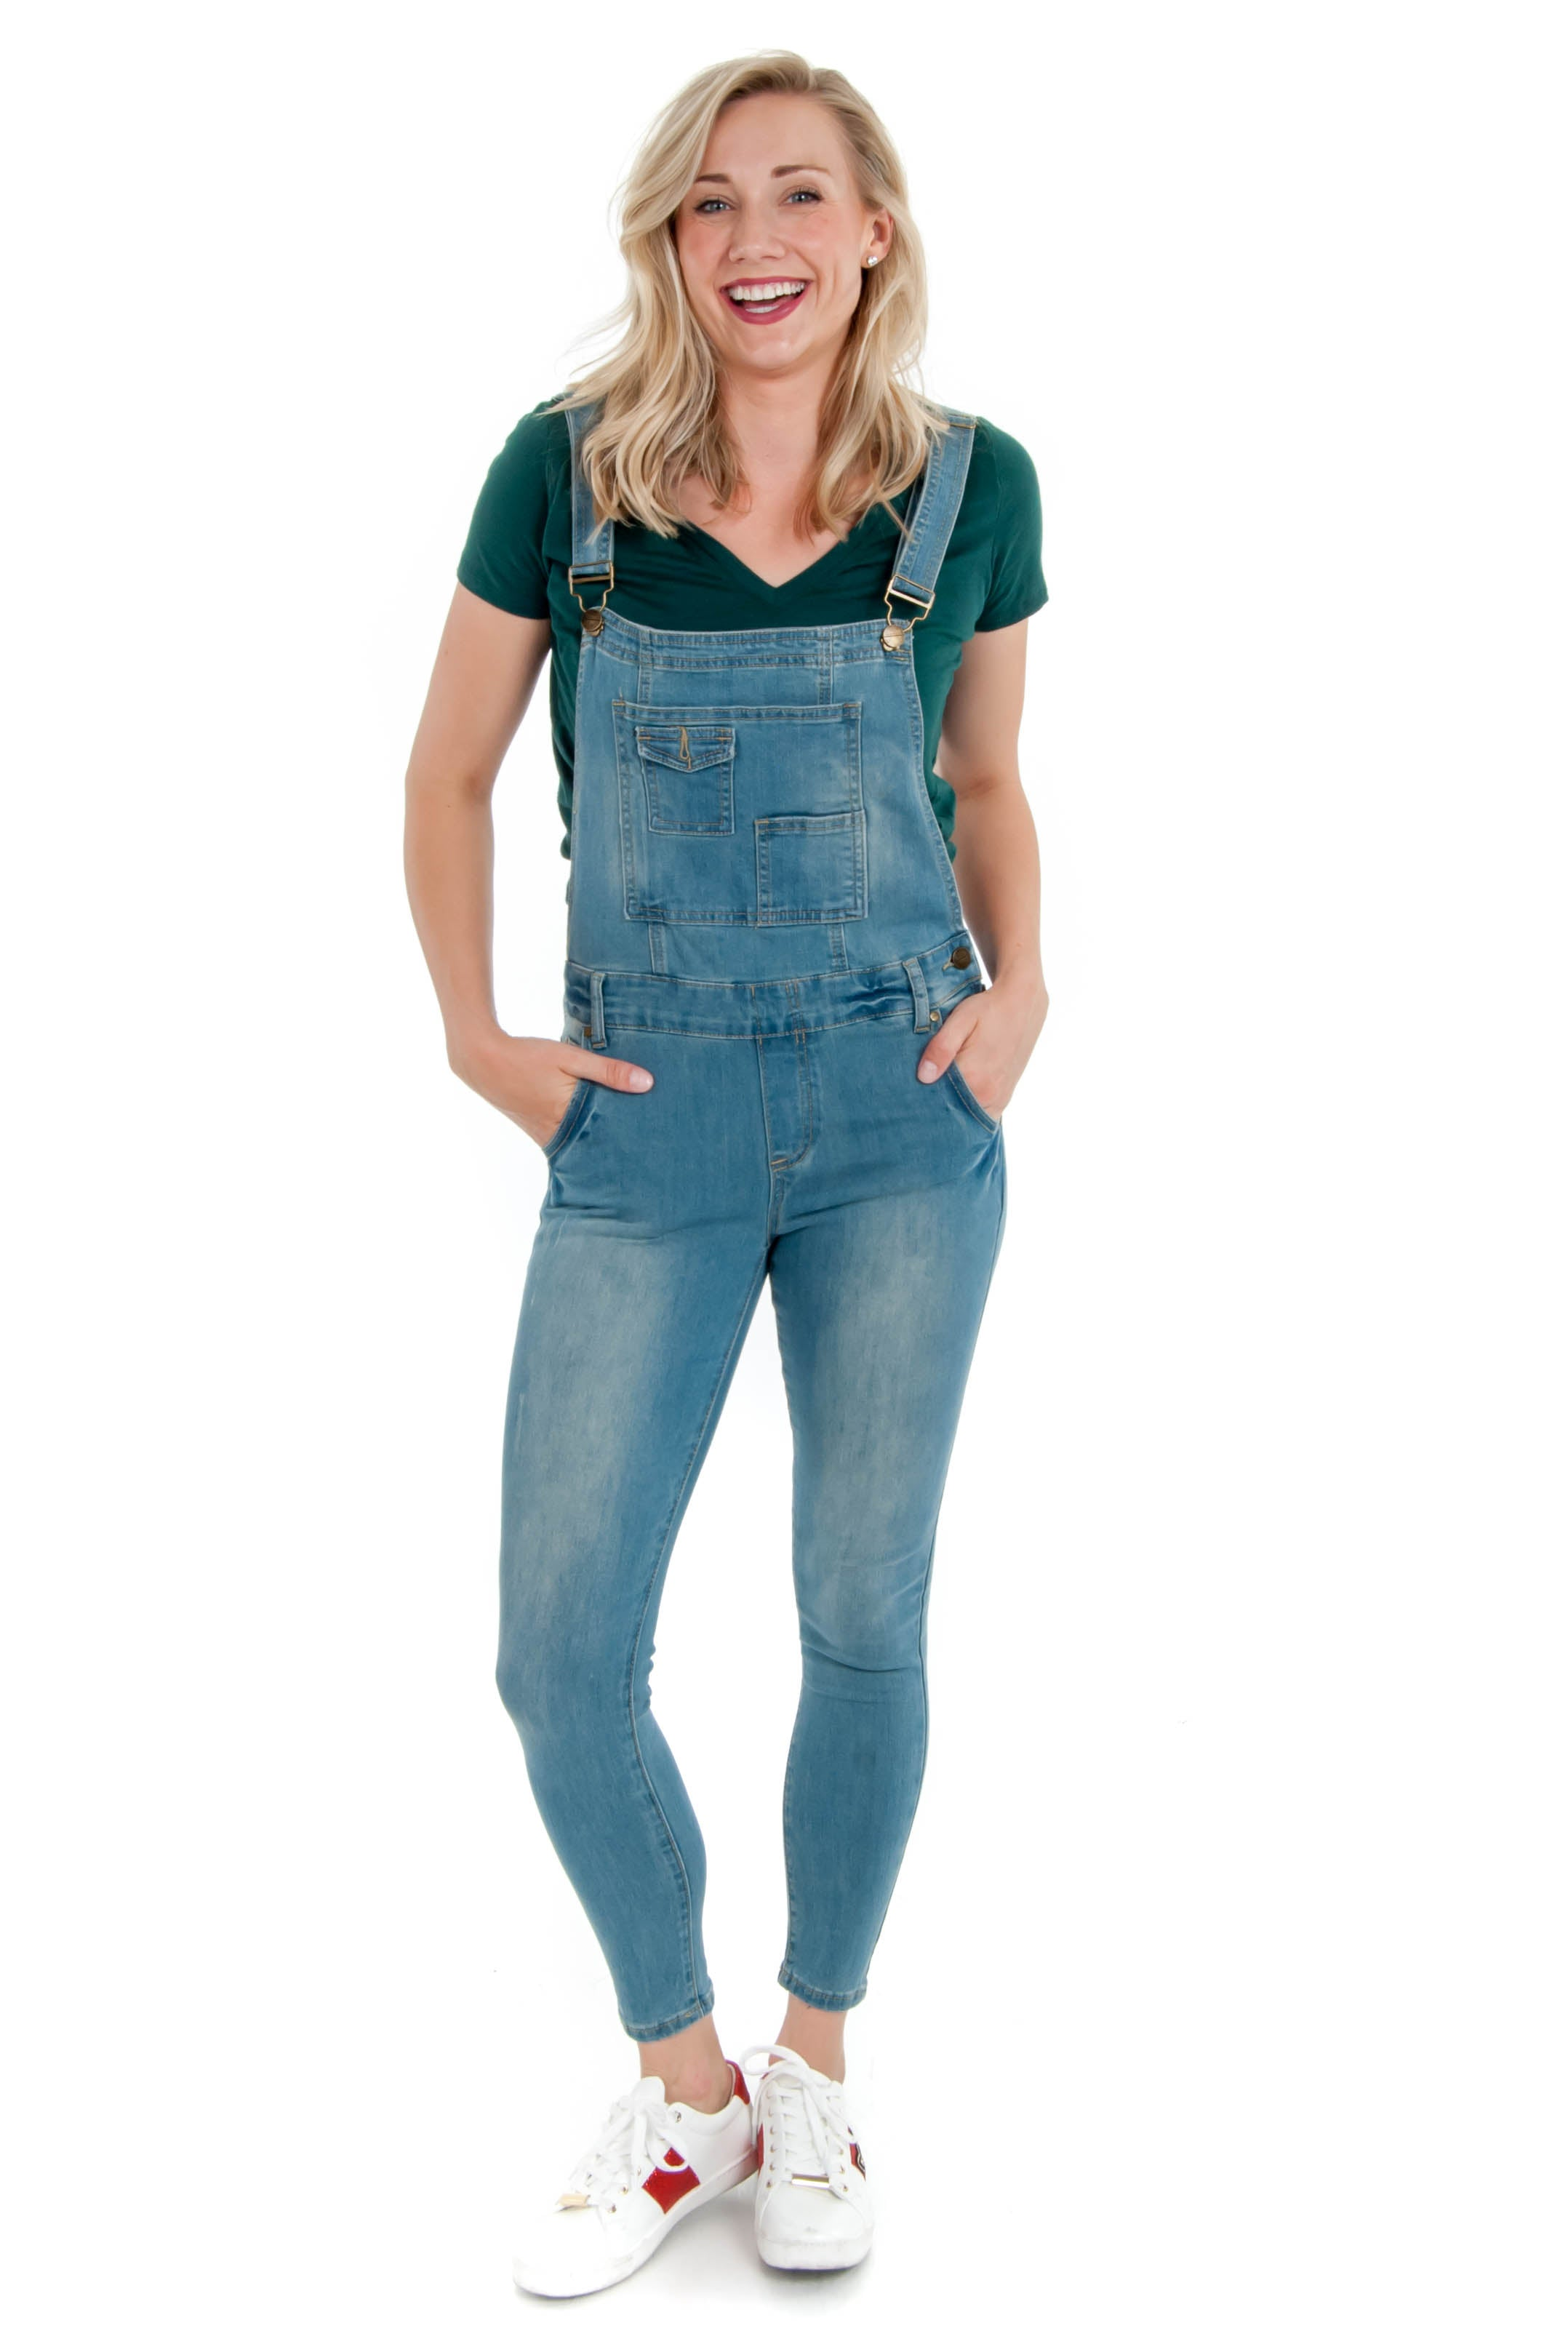 The Wishlist Overalls [Product_type], [Product vendor]- Oliver's Attic